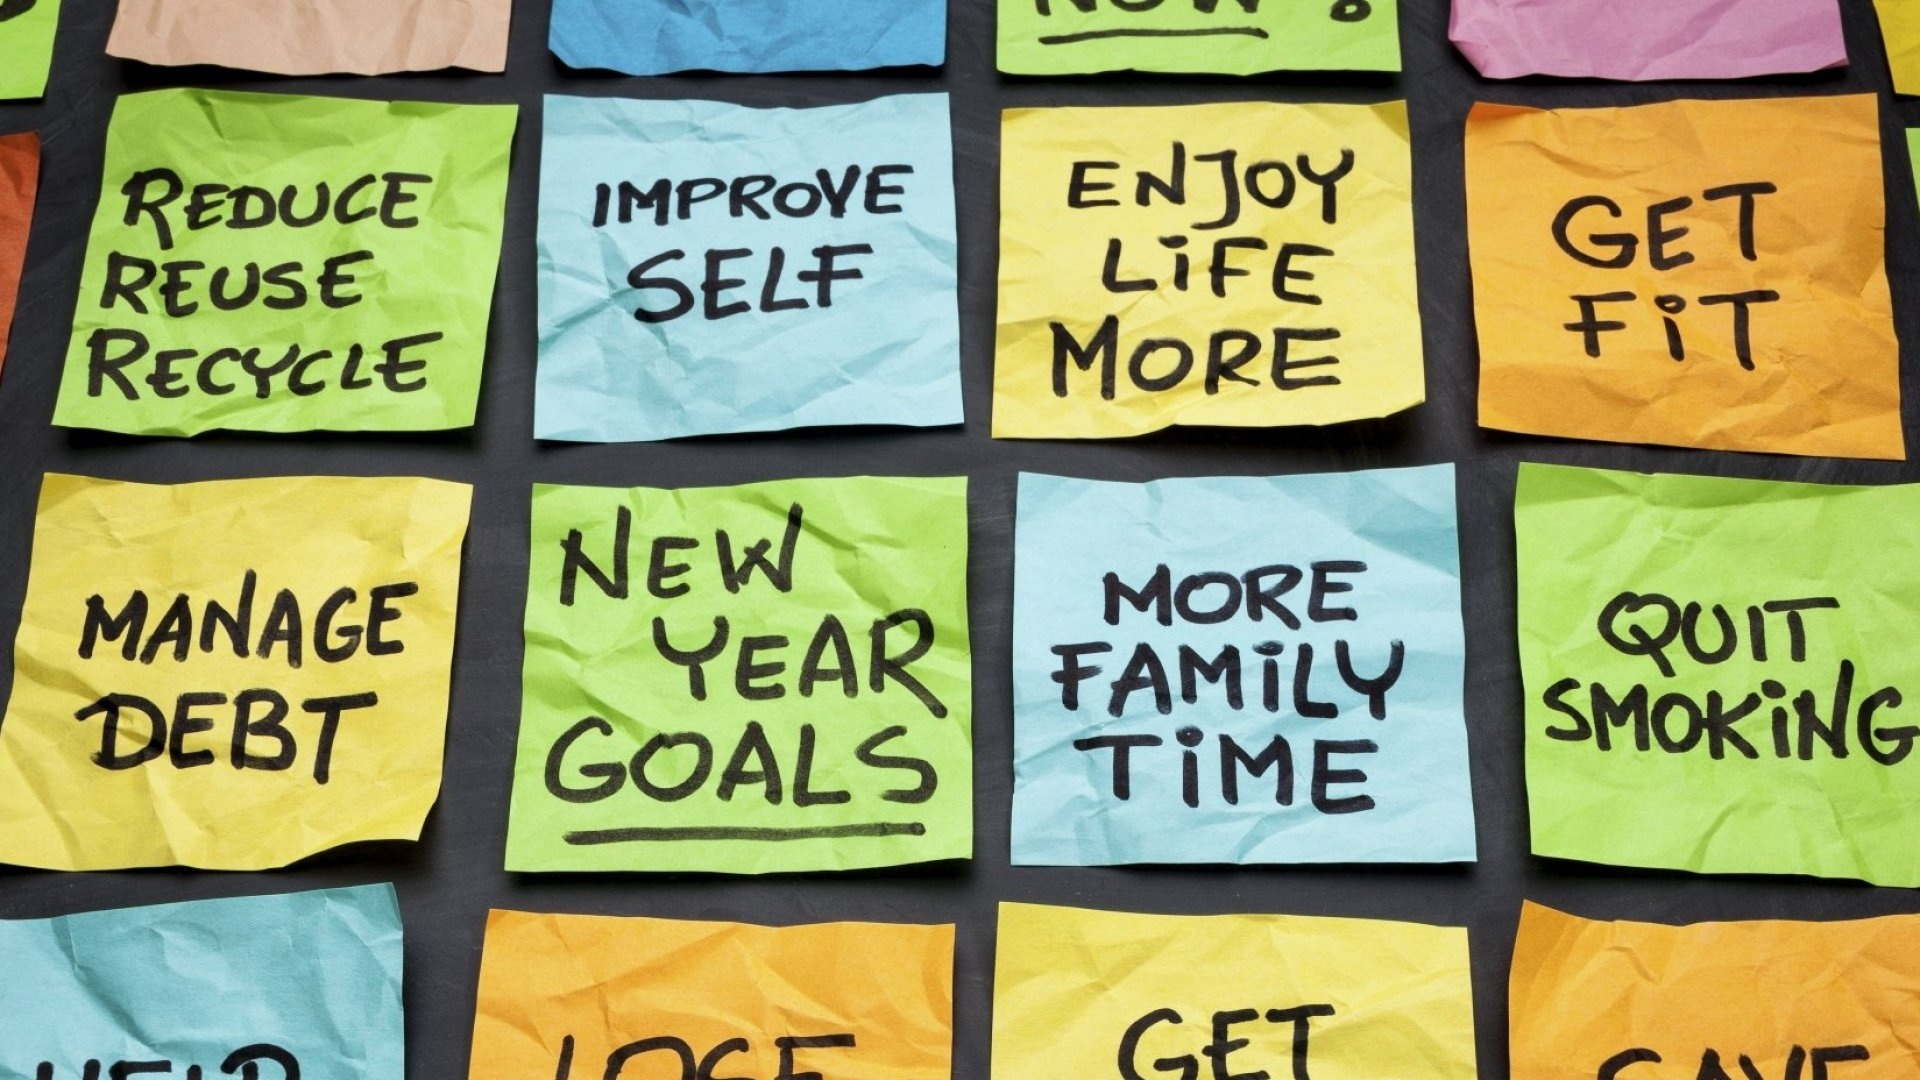 The Most Popular Resolution for 2016 Should Be a Pleasure to Follow